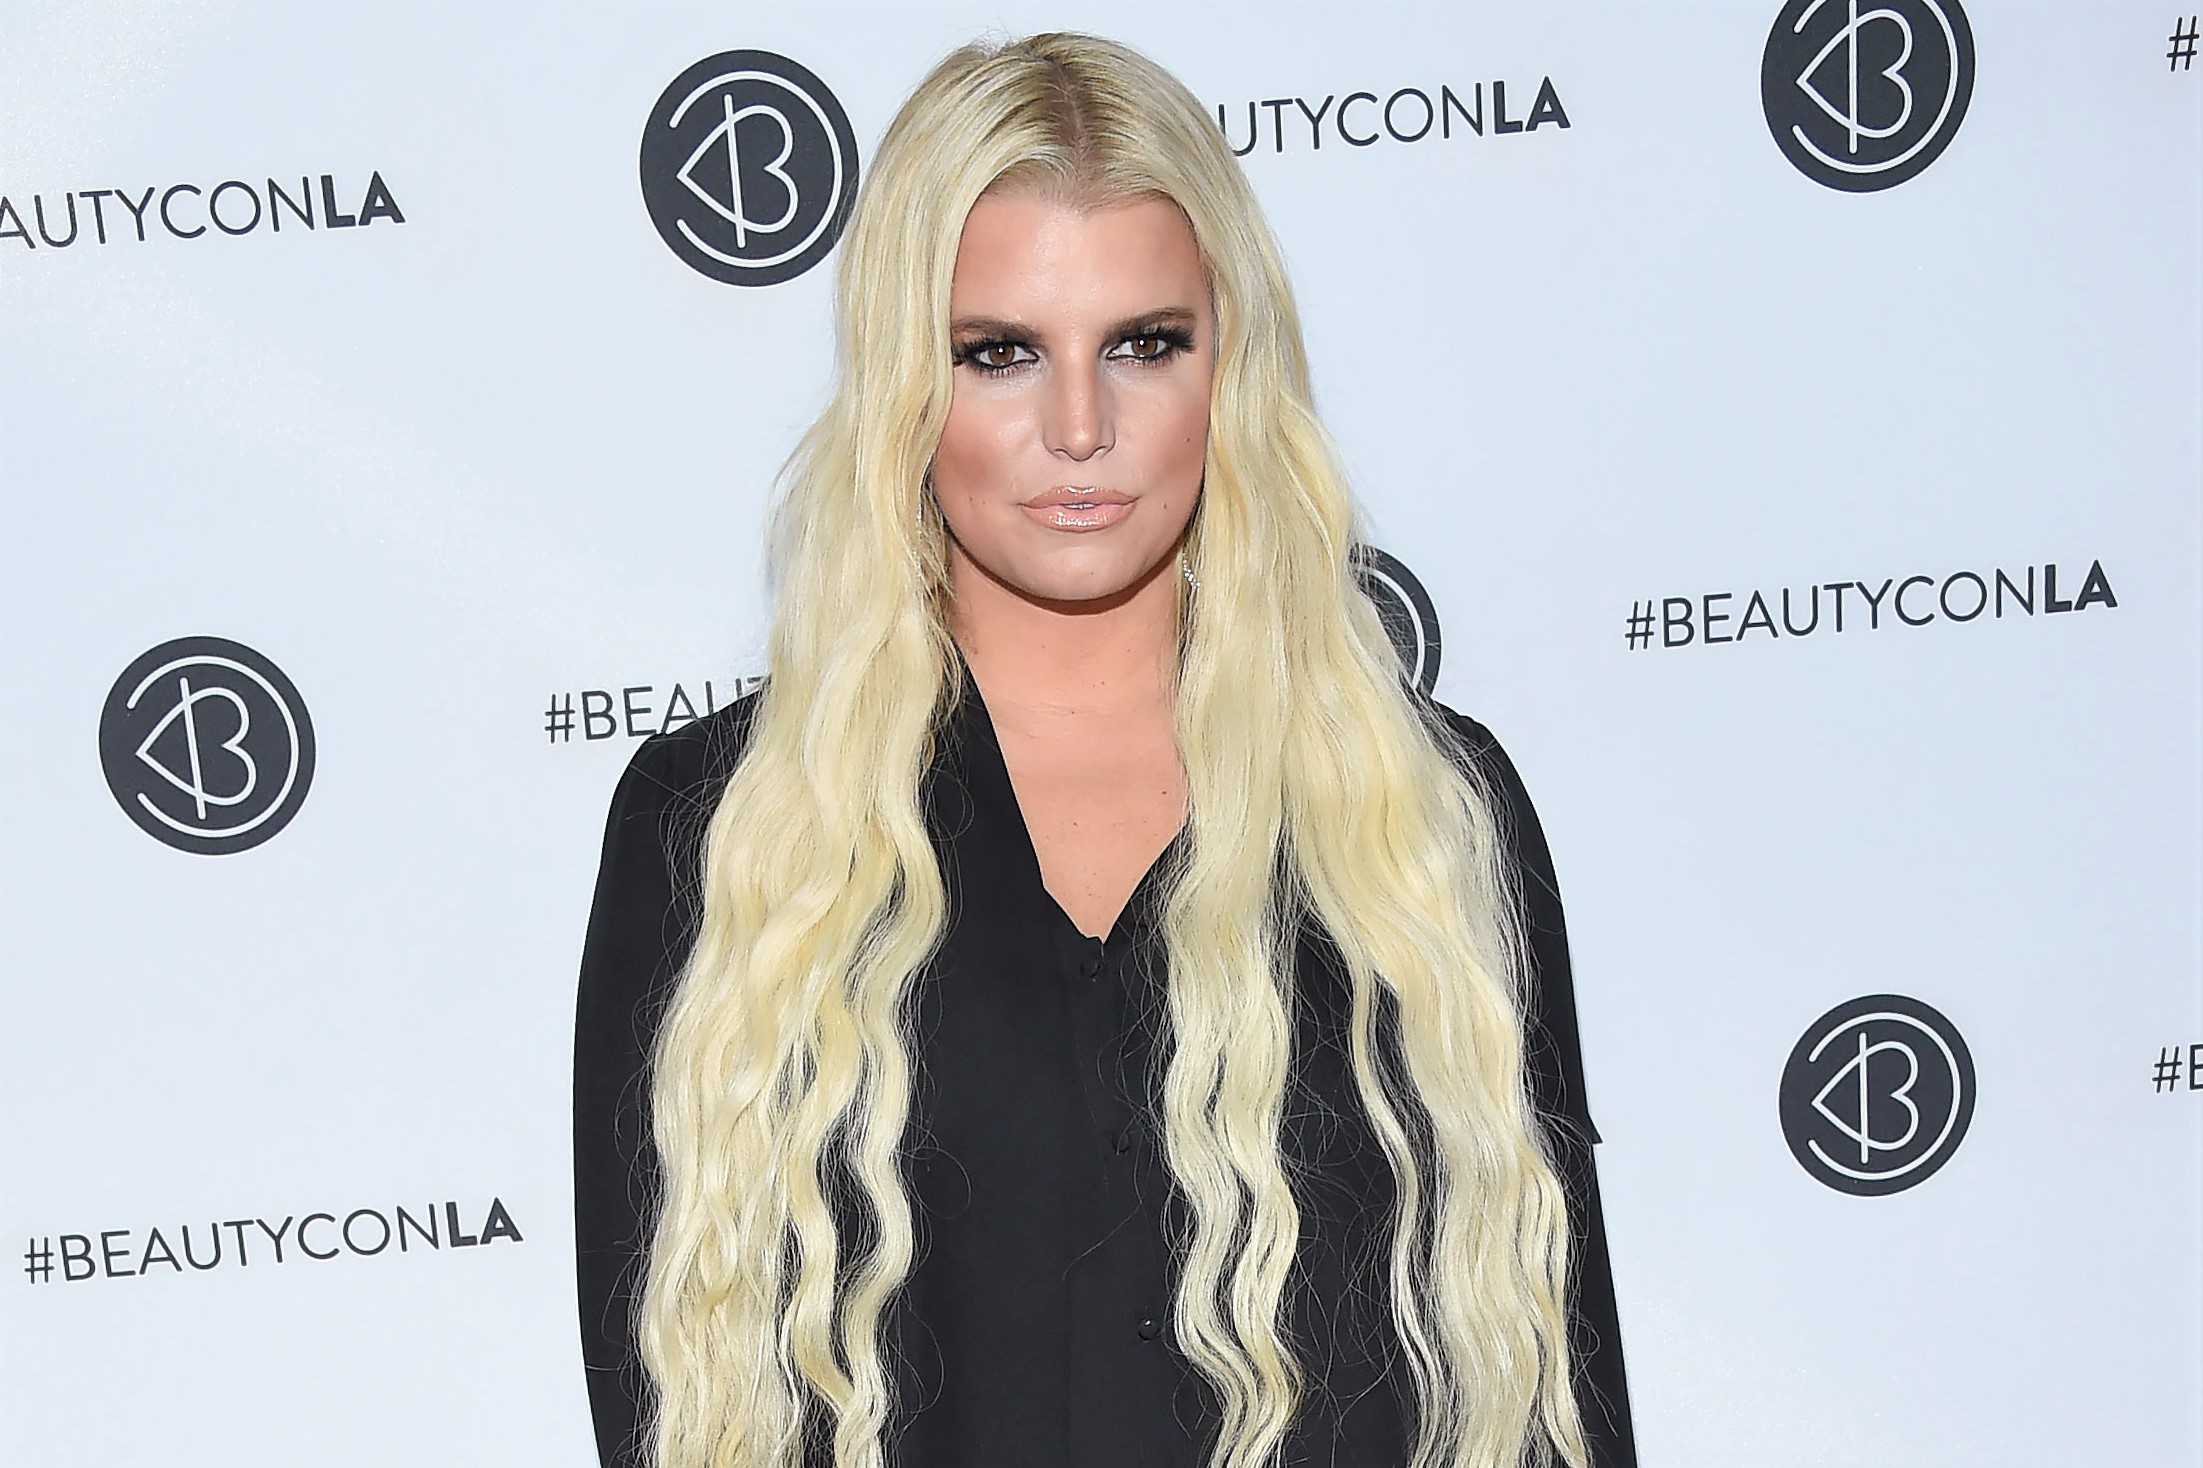 Jessica Simpson Long Blonde Hair 2019